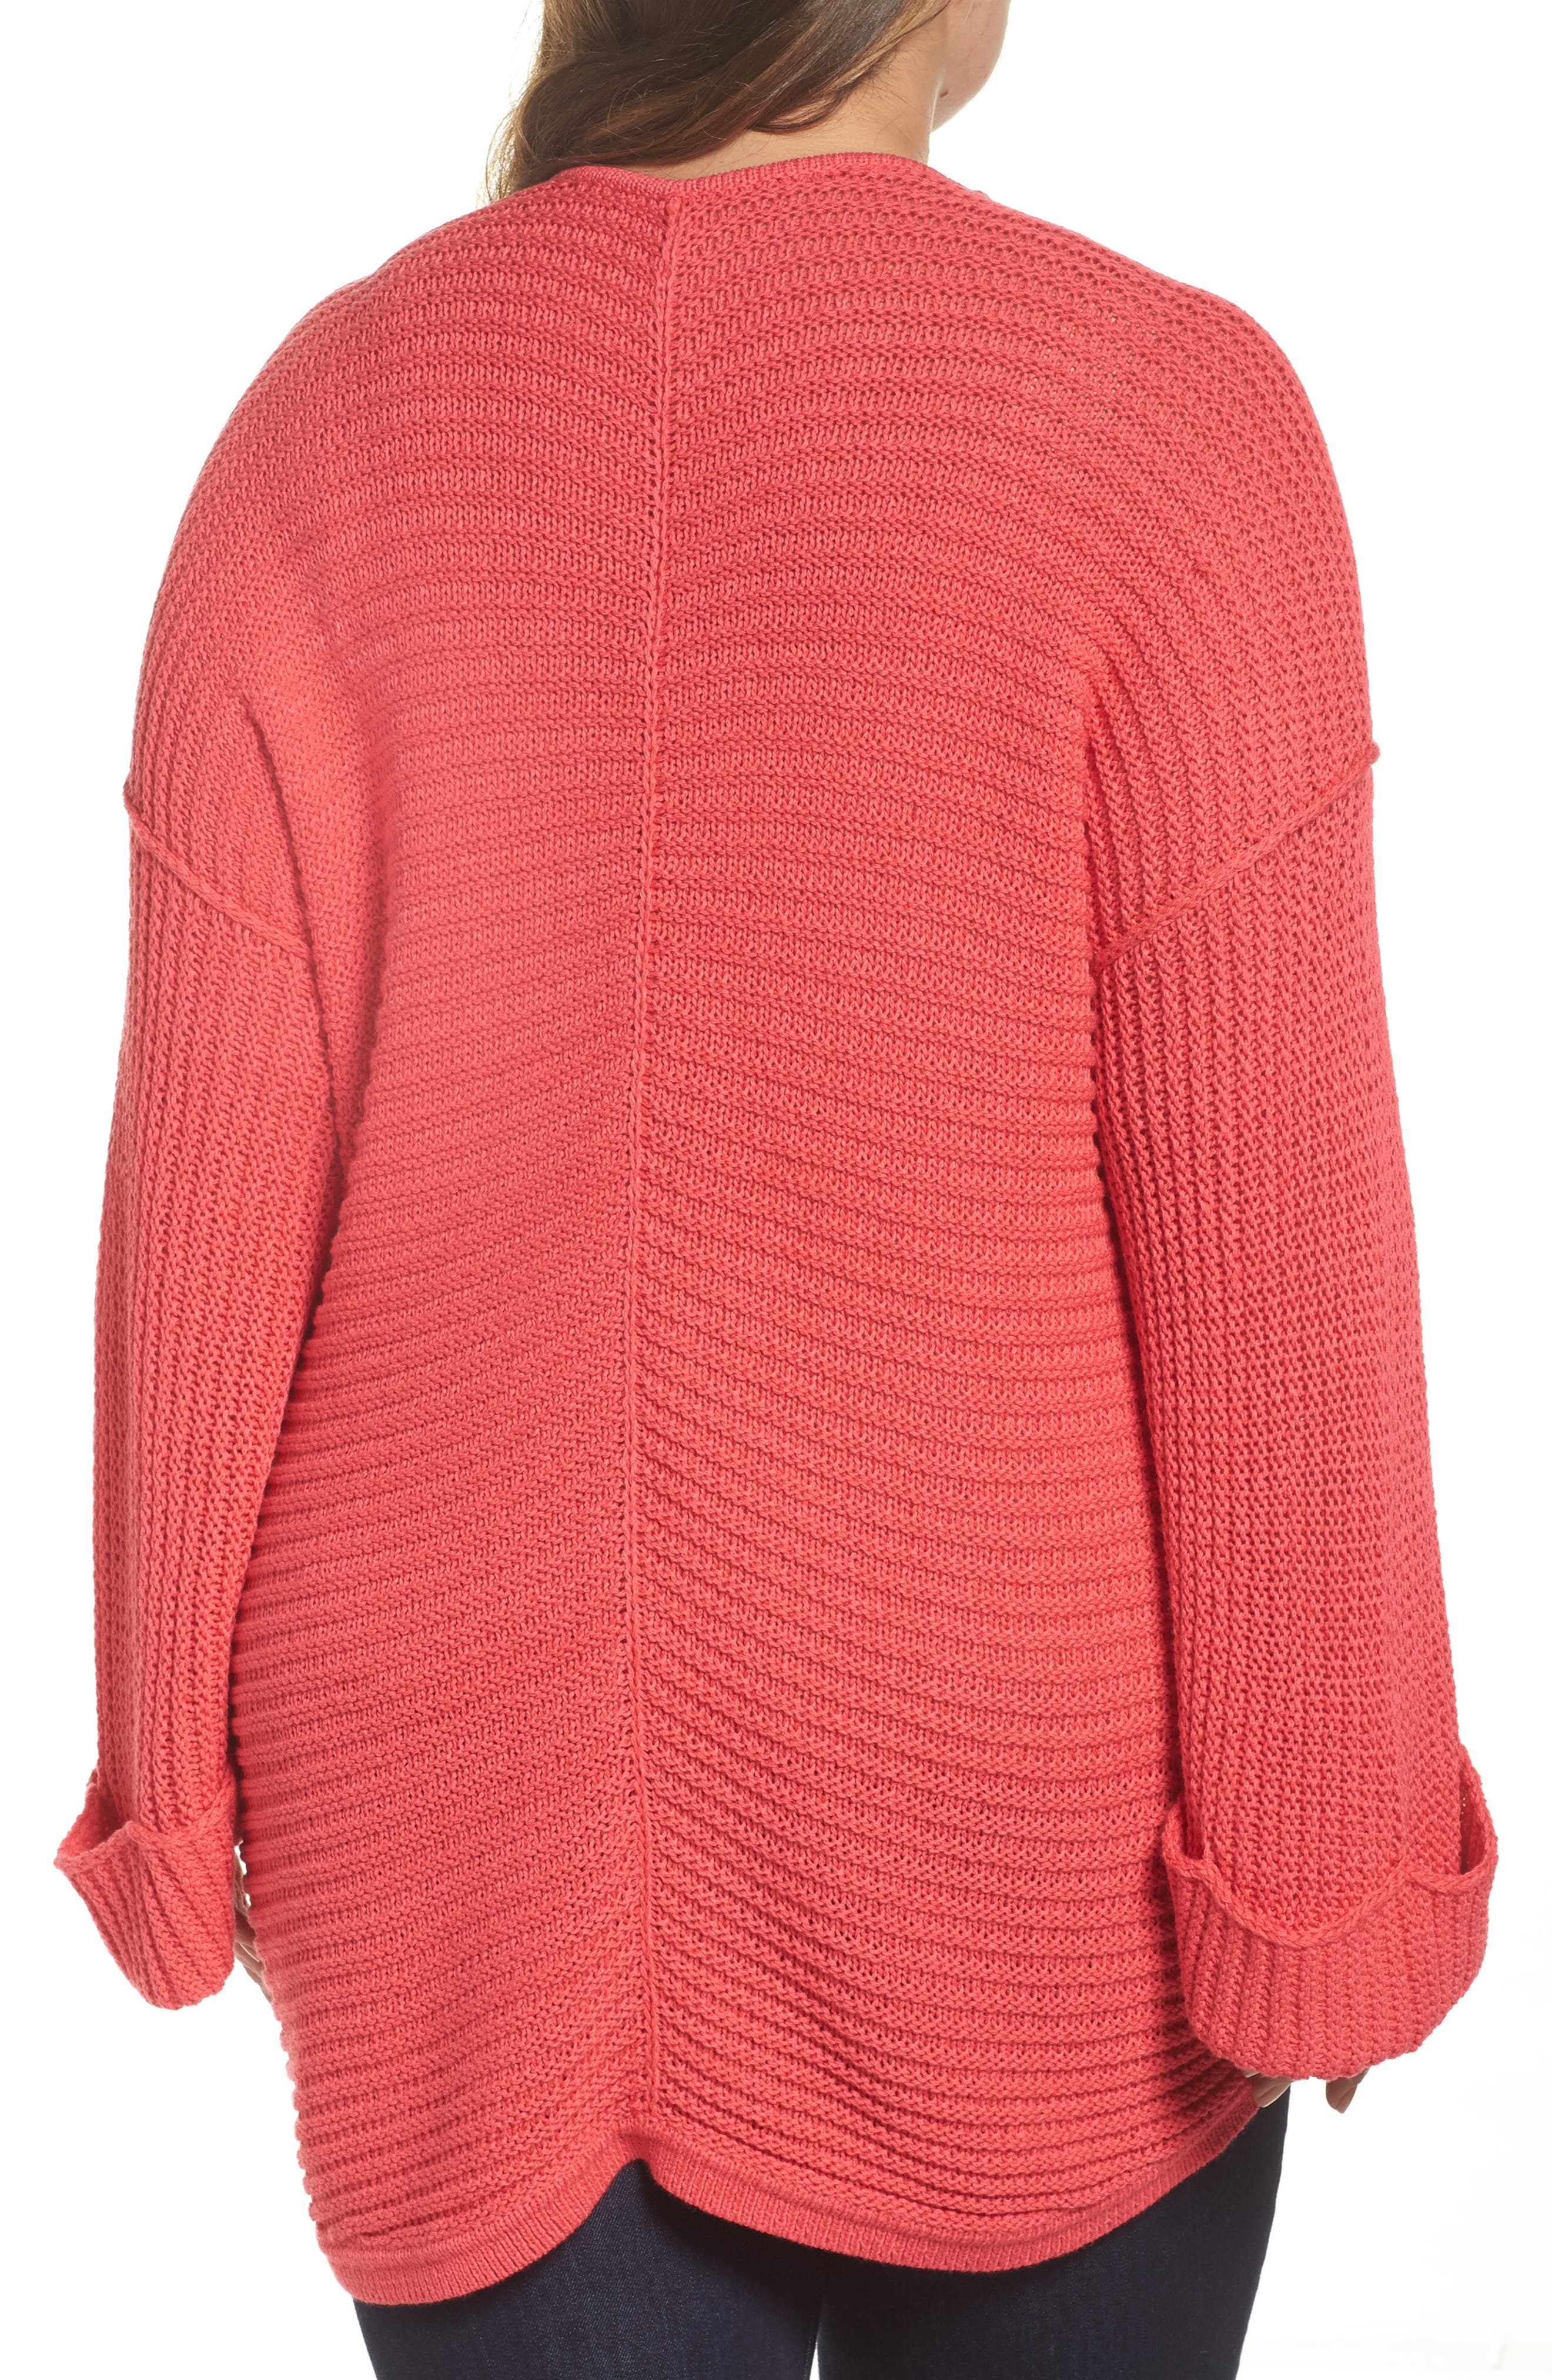 Cuffed Bell Sleeve Sweater,                             Alternate thumbnail 6, color,